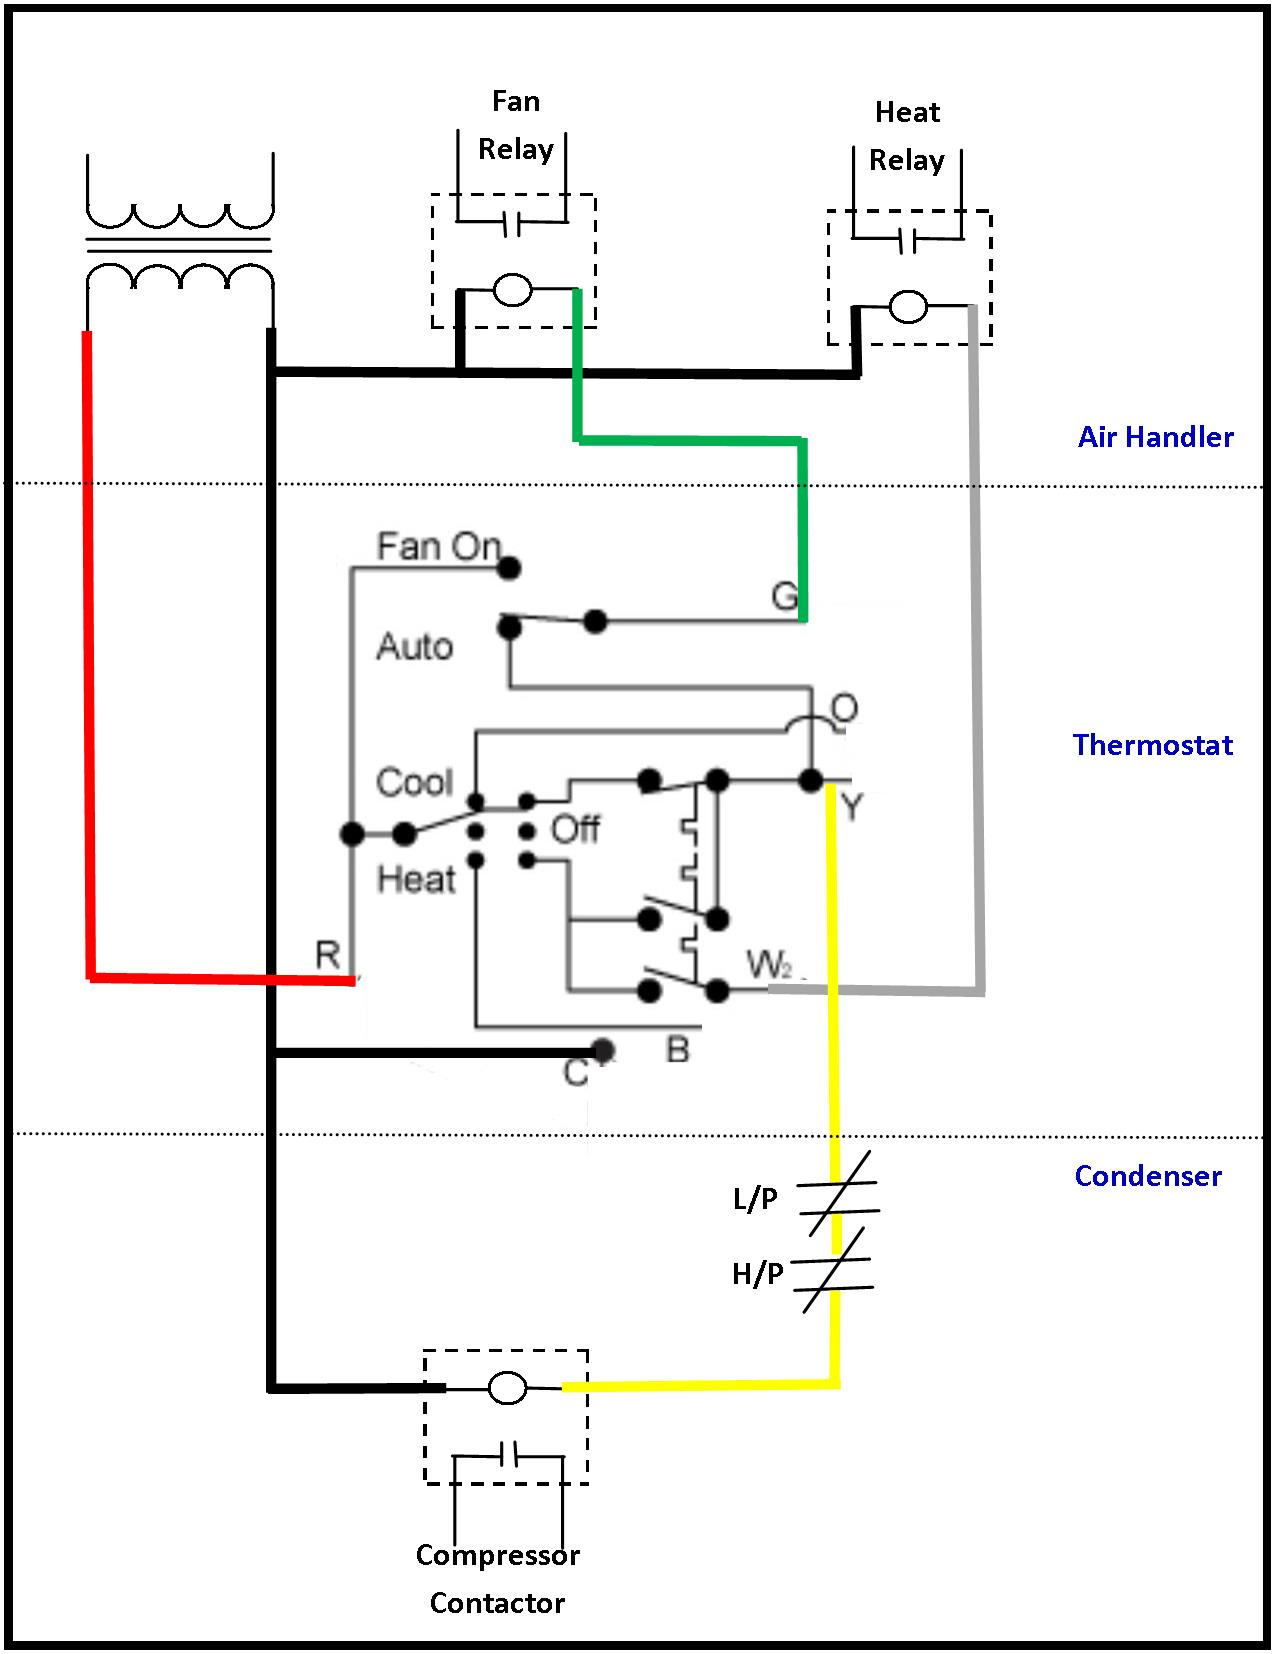 AC low voltage wiring diagram1 hvac wiring diagram efcaviation com hvac wire diagram at reclaimingppi.co